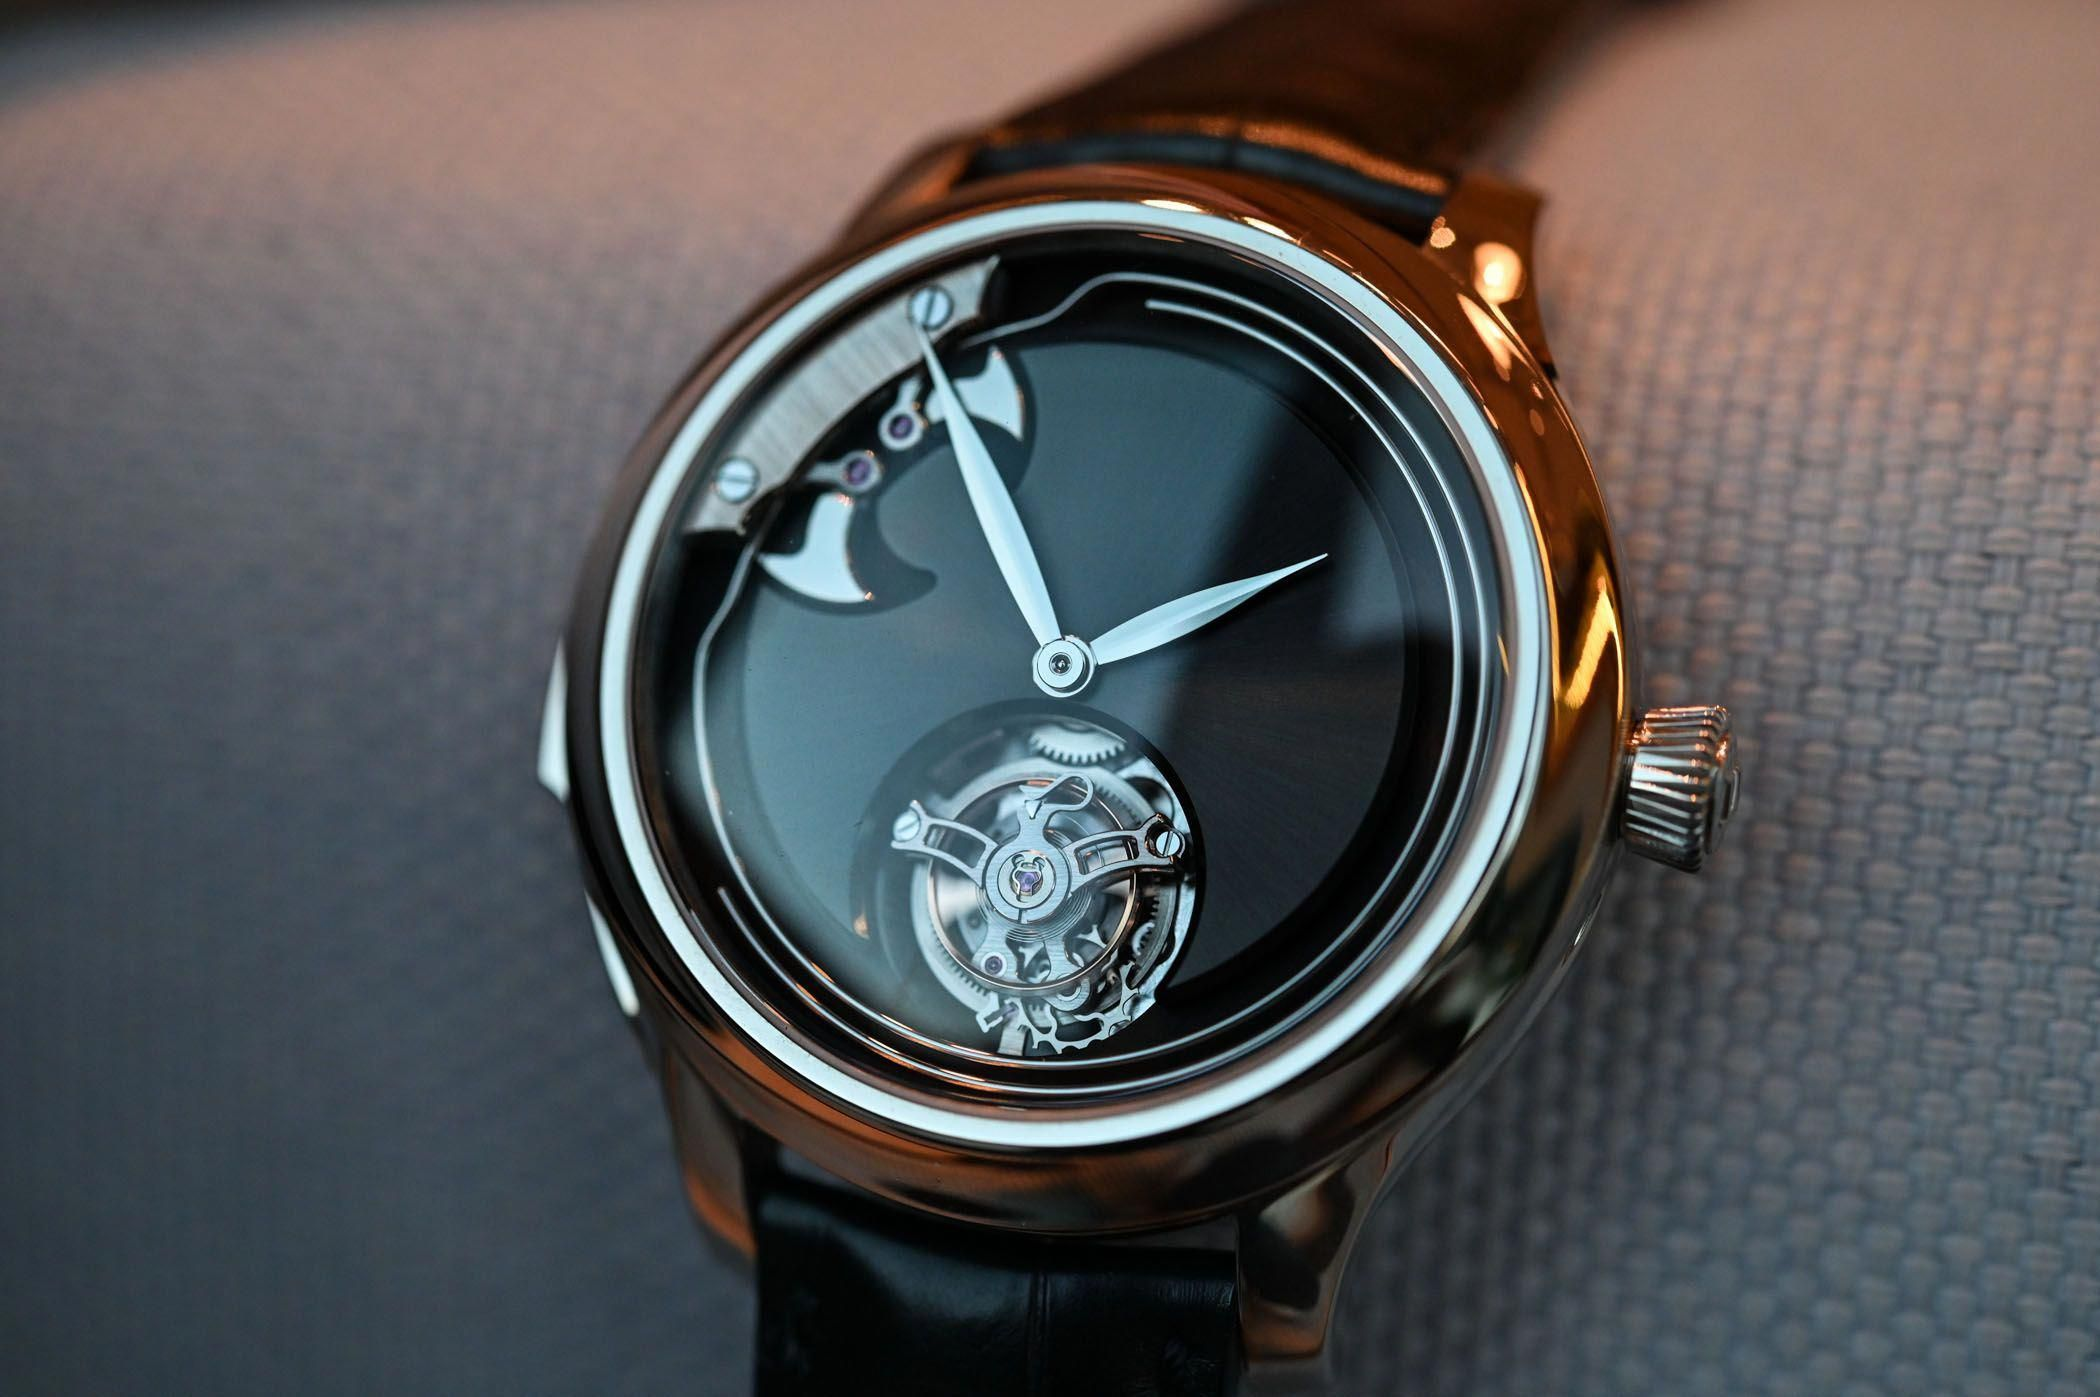 H. Moser & Cie. Endeavour Concept Minute Repeater Tourbillon (Live Pics) - Monochrome Watches #androidwatch,digitalwatch,gpswatch,sportwatch,quartzwatch,luxurywatches,elegantwatches,bestwatches,beautifulwatches,menswatches,applewatch #monochromewatches H. Moser & Cie. Endeavour Concept Minute Repeater Tourbillon (Live Pics) - Monochrome Watches #androidwatch,digitalwatch,gpswatch,sportwatch,quartzwatch,luxurywatches,elegantwatches,bestwatches,beautifulwatches,menswatches,applewatch #monochromewa #monochromewatches